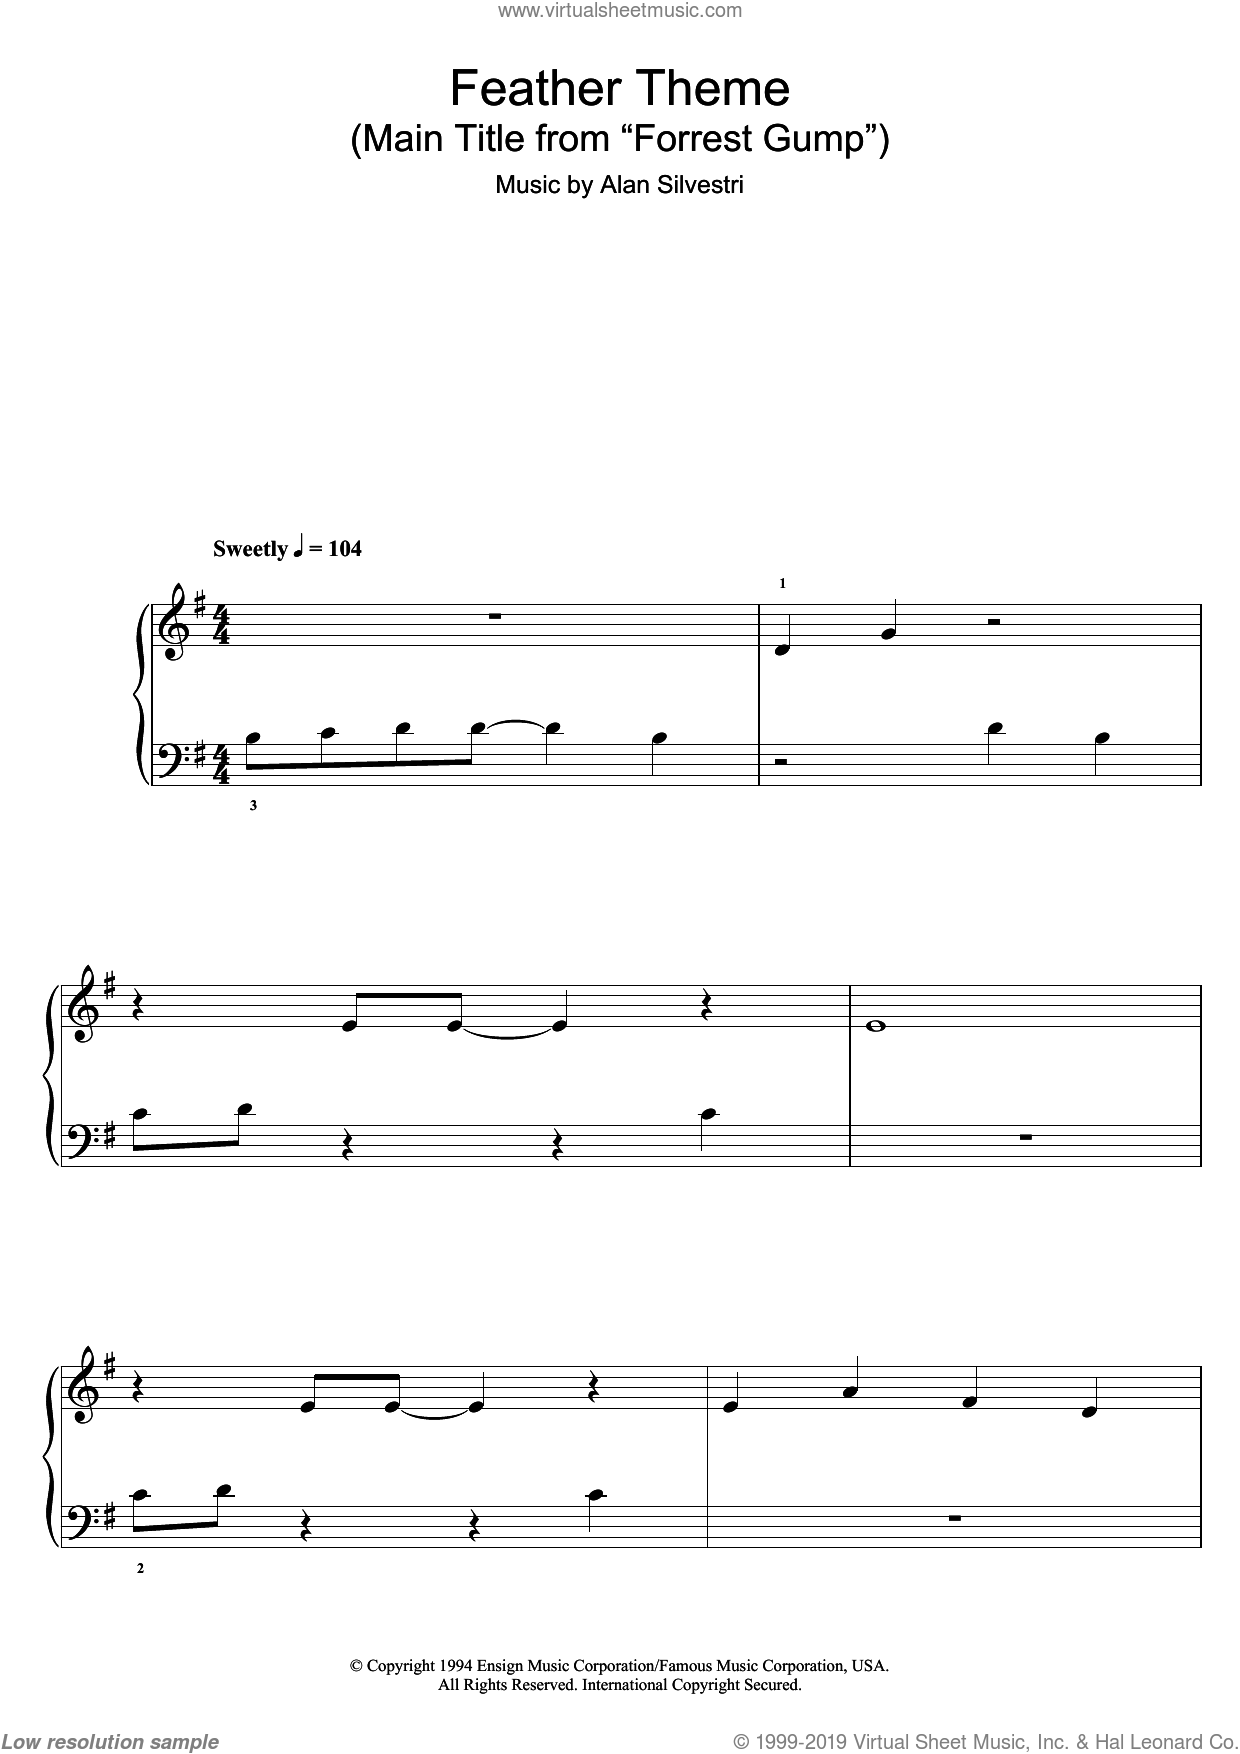 Feather Theme (Main Title from Forrest Gump) sheet music for piano solo (chords) by Alan Silvestri